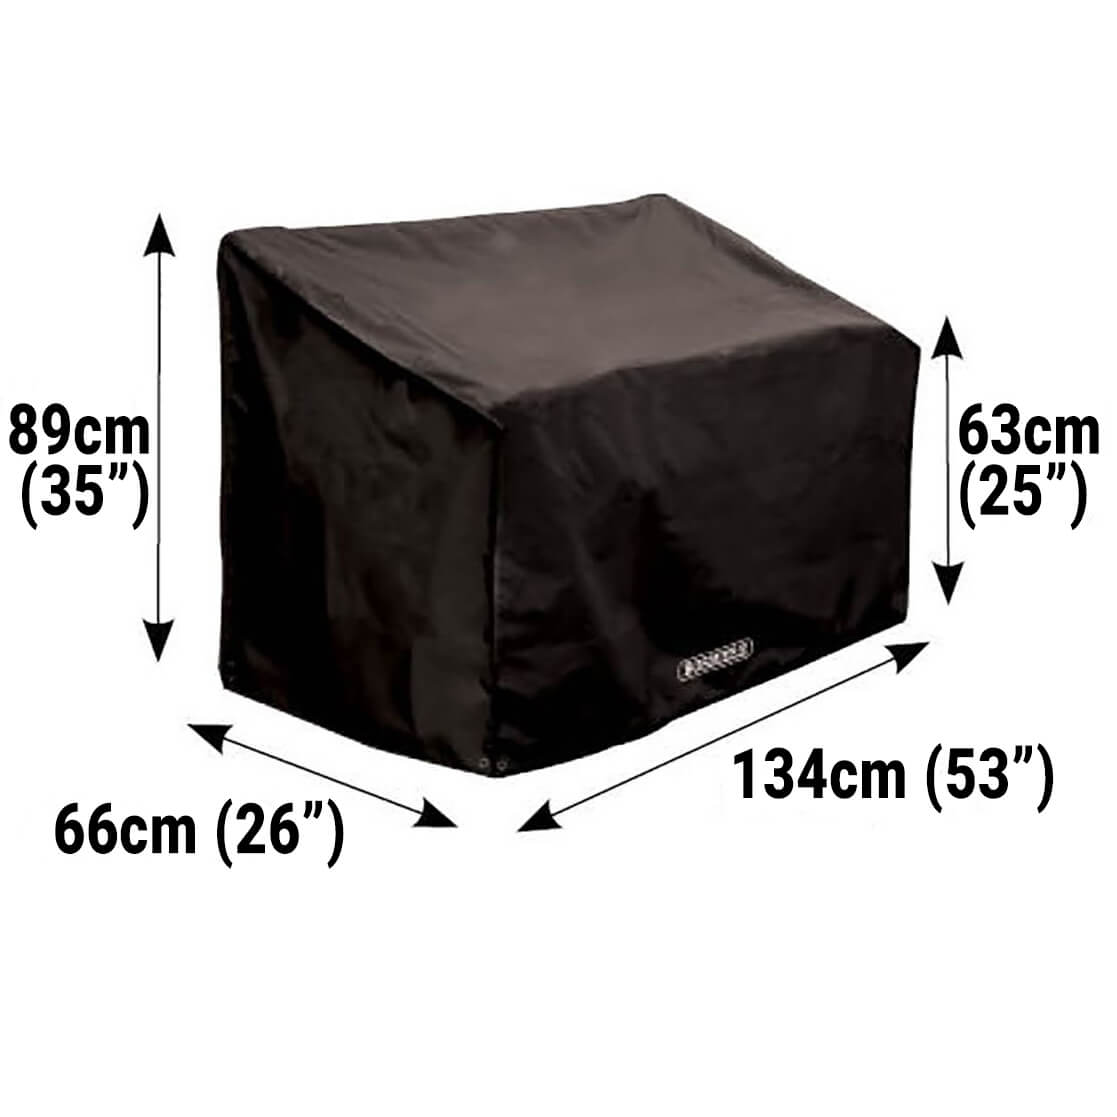 Small Image of Bosmere Protector 6000 2 Seat Bench Cover - D605